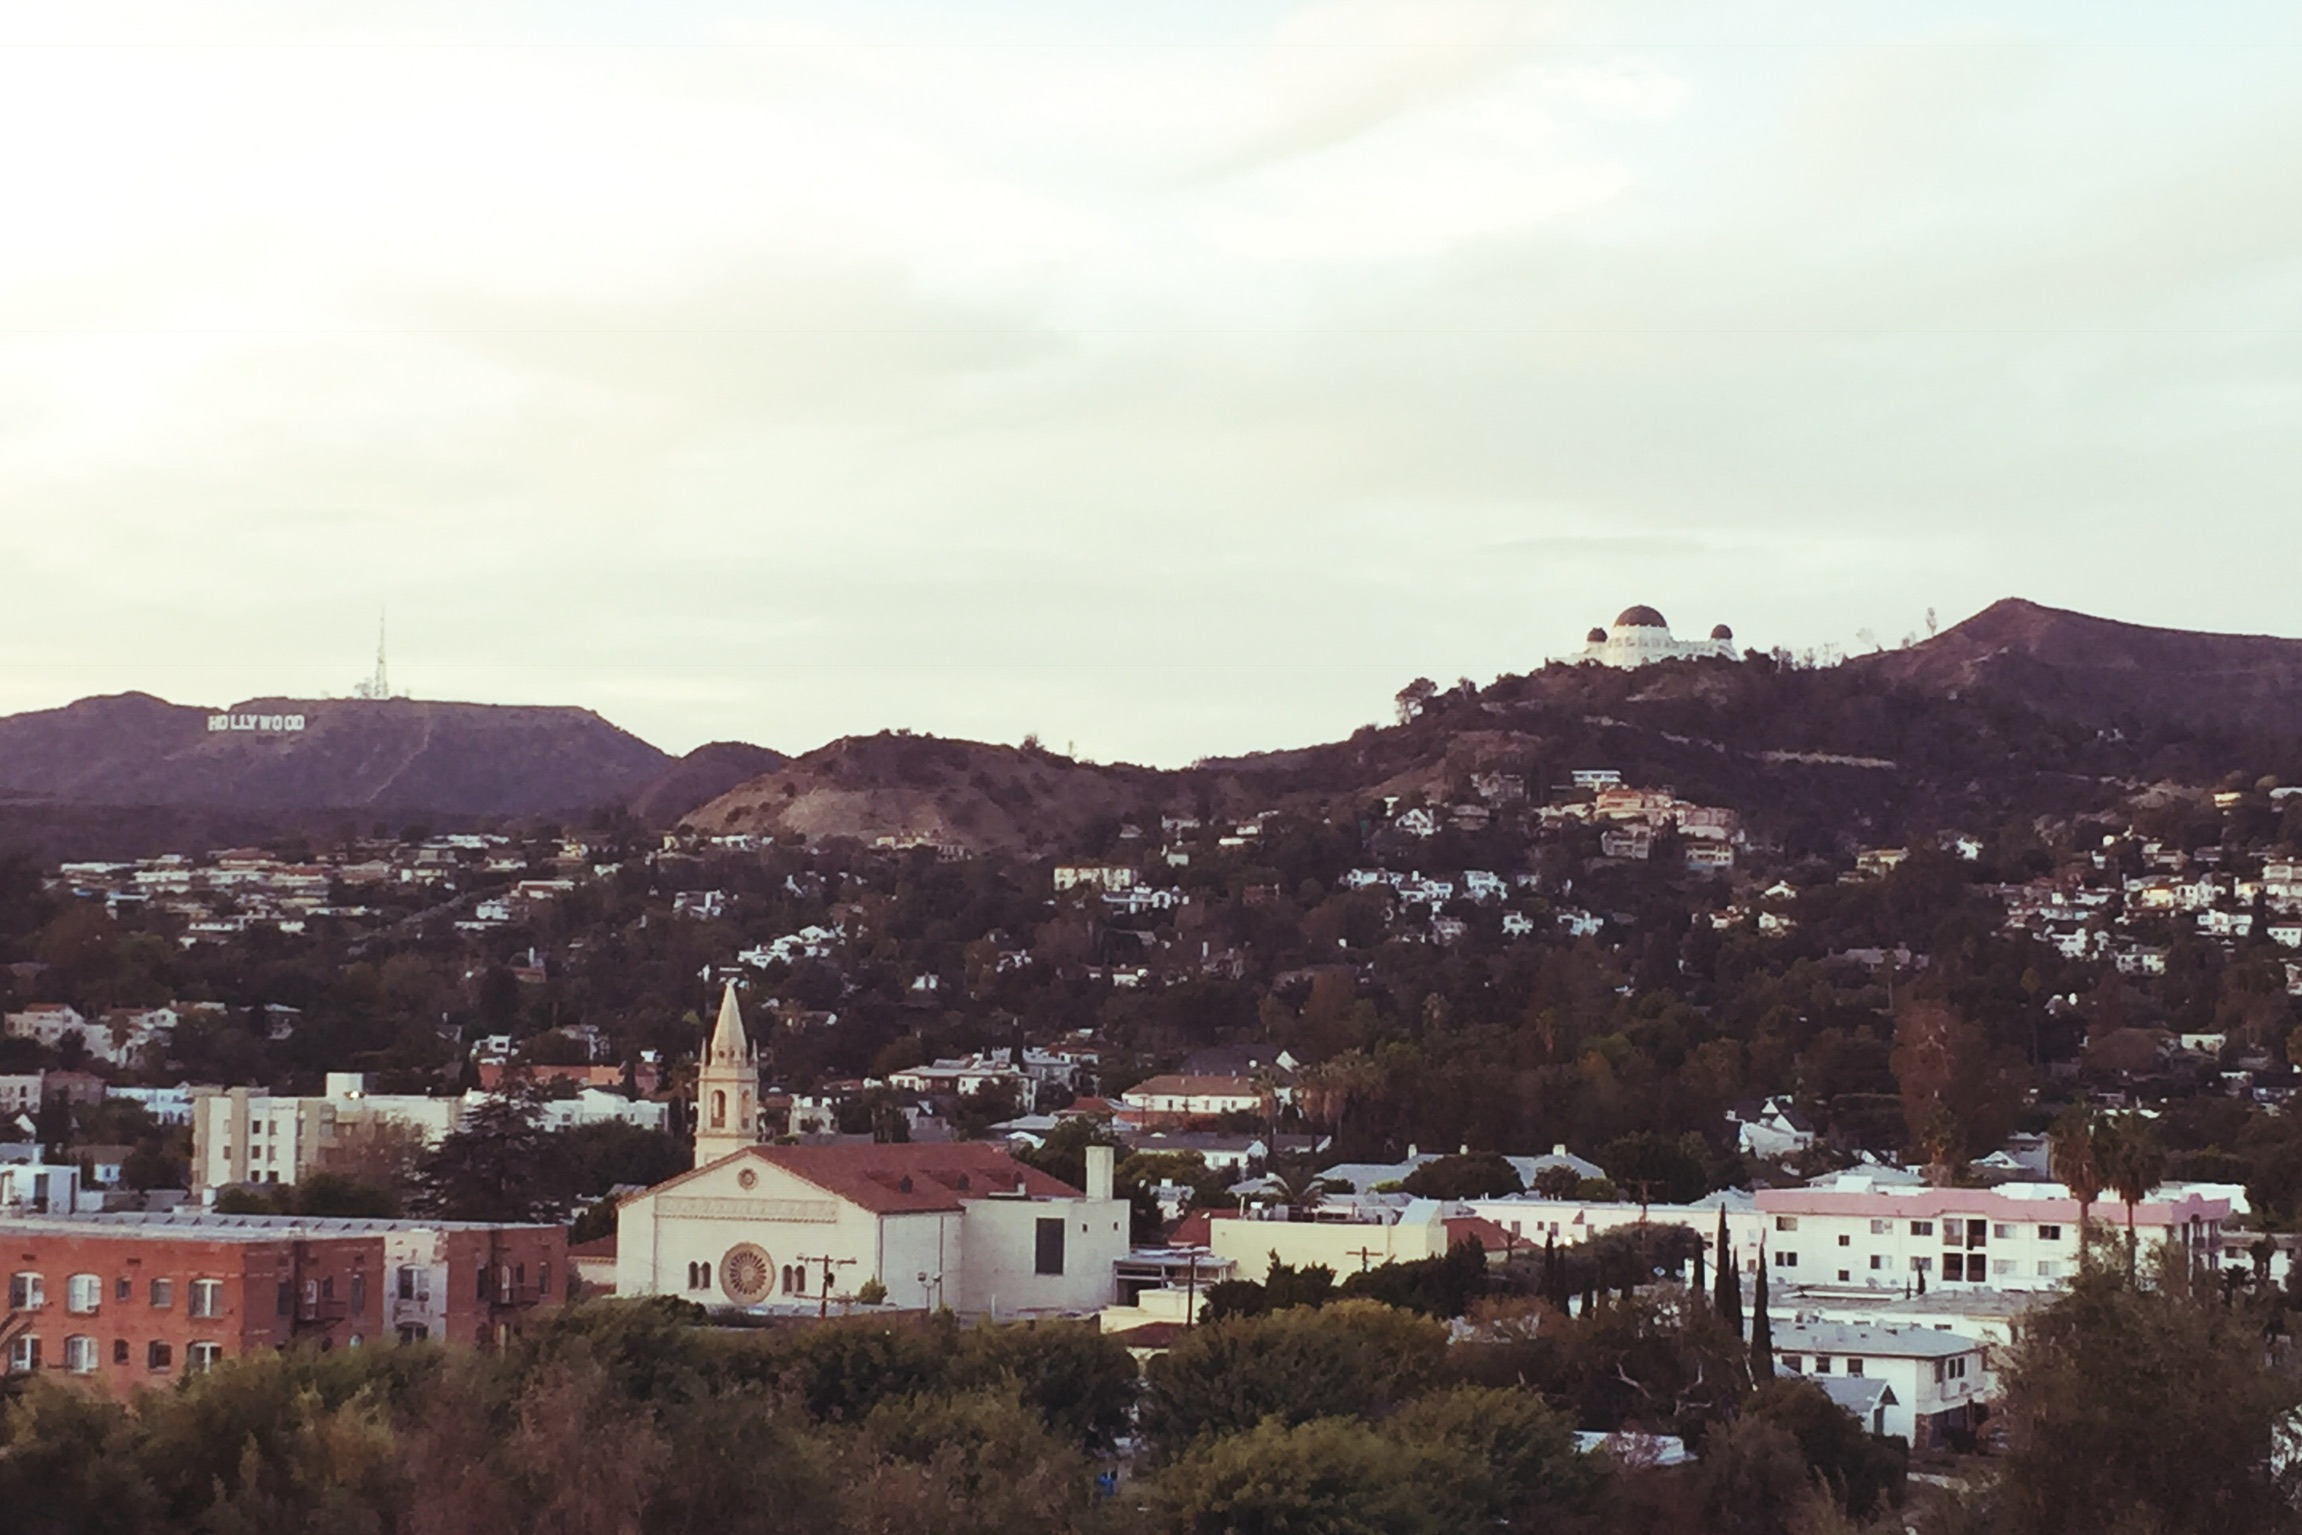 View north from the park to the Hollywood sign & Griffith Observatory